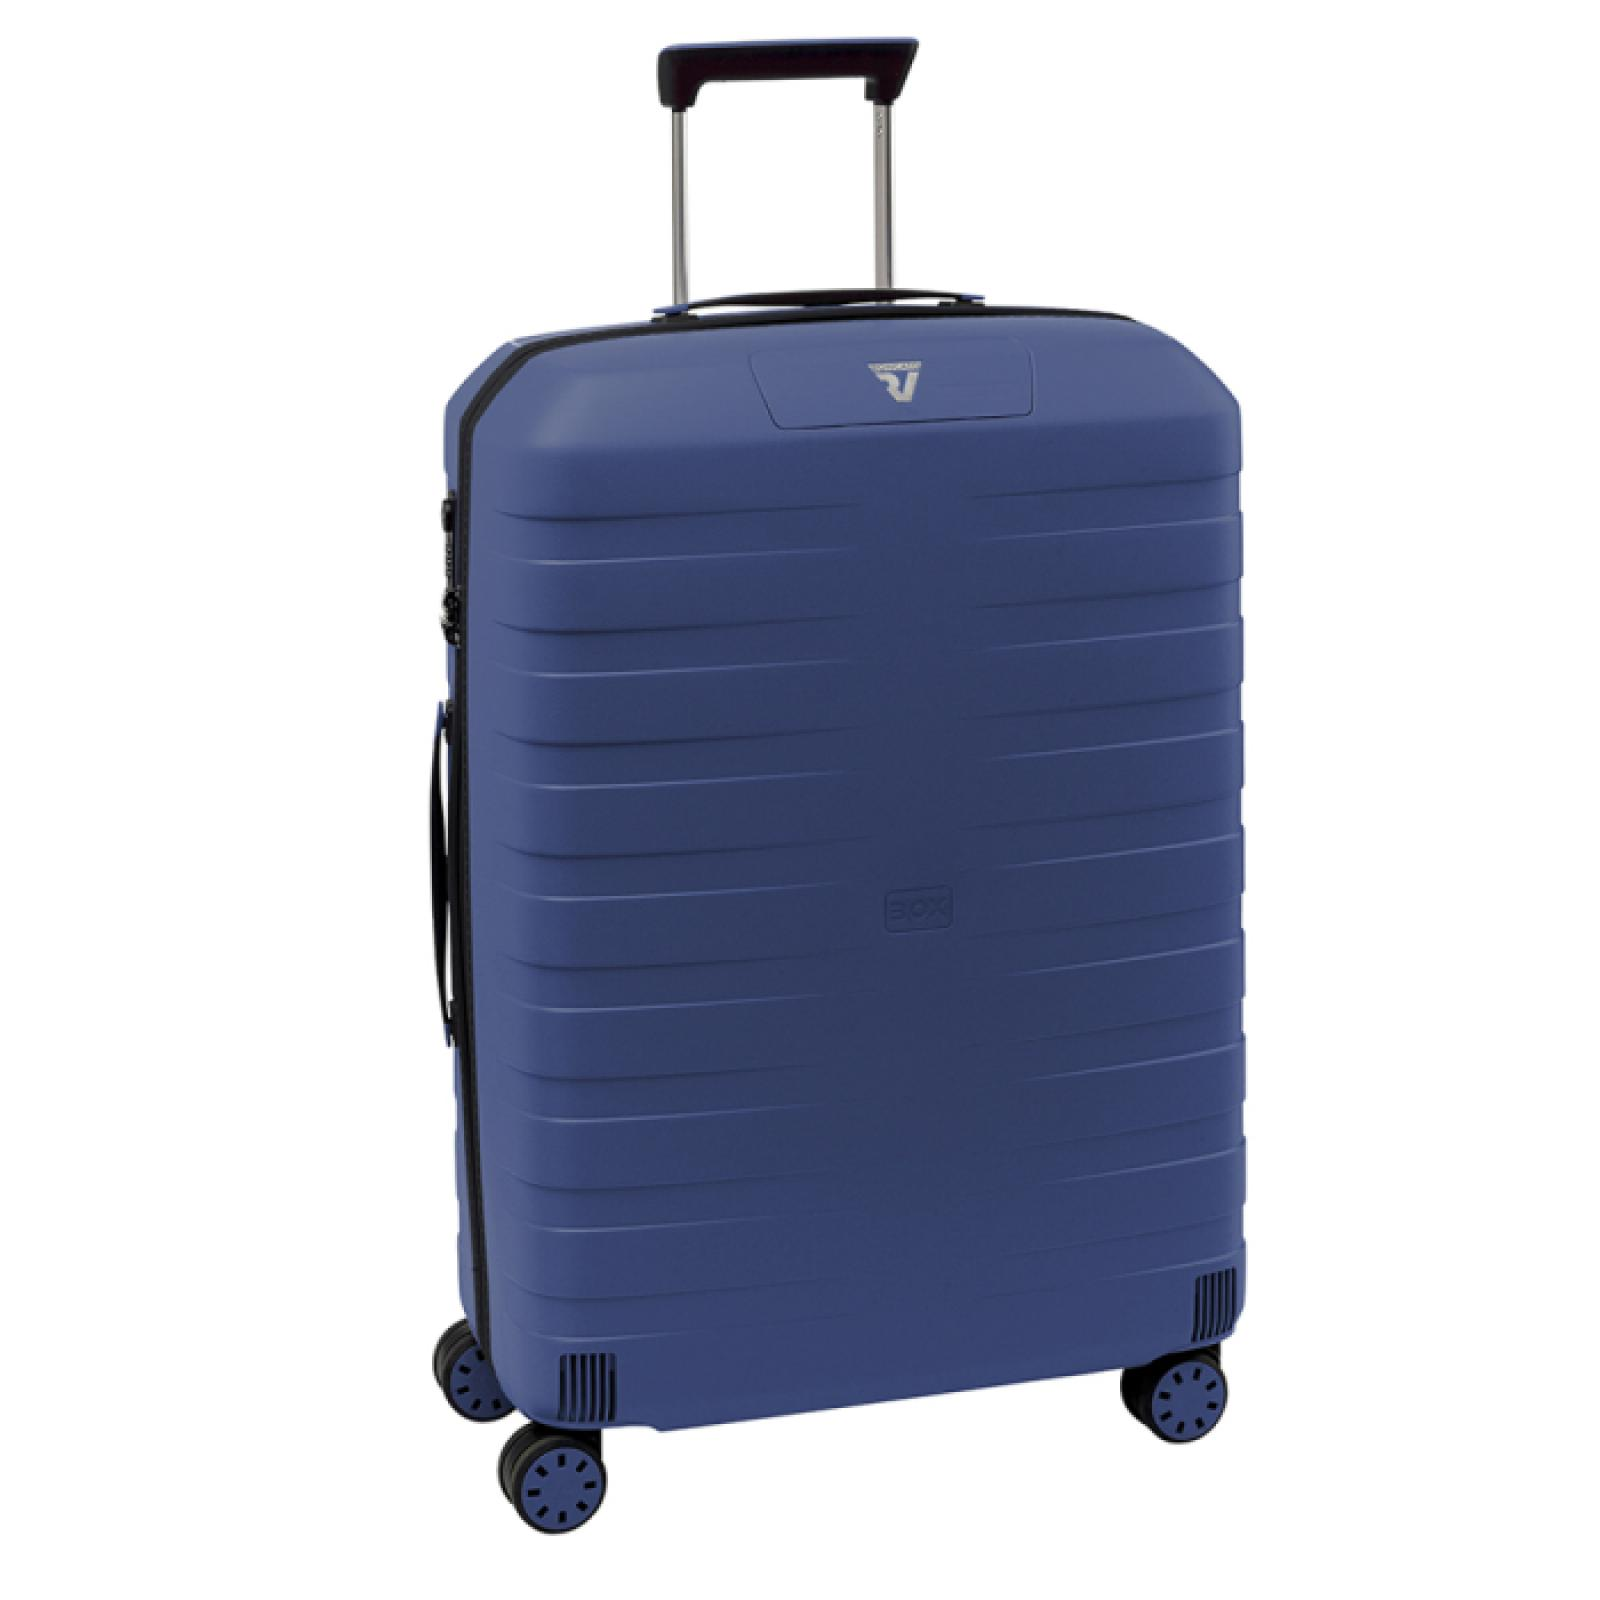 Trolley Medium Box 2.0 Spinner 69 cm-NAVY-UN